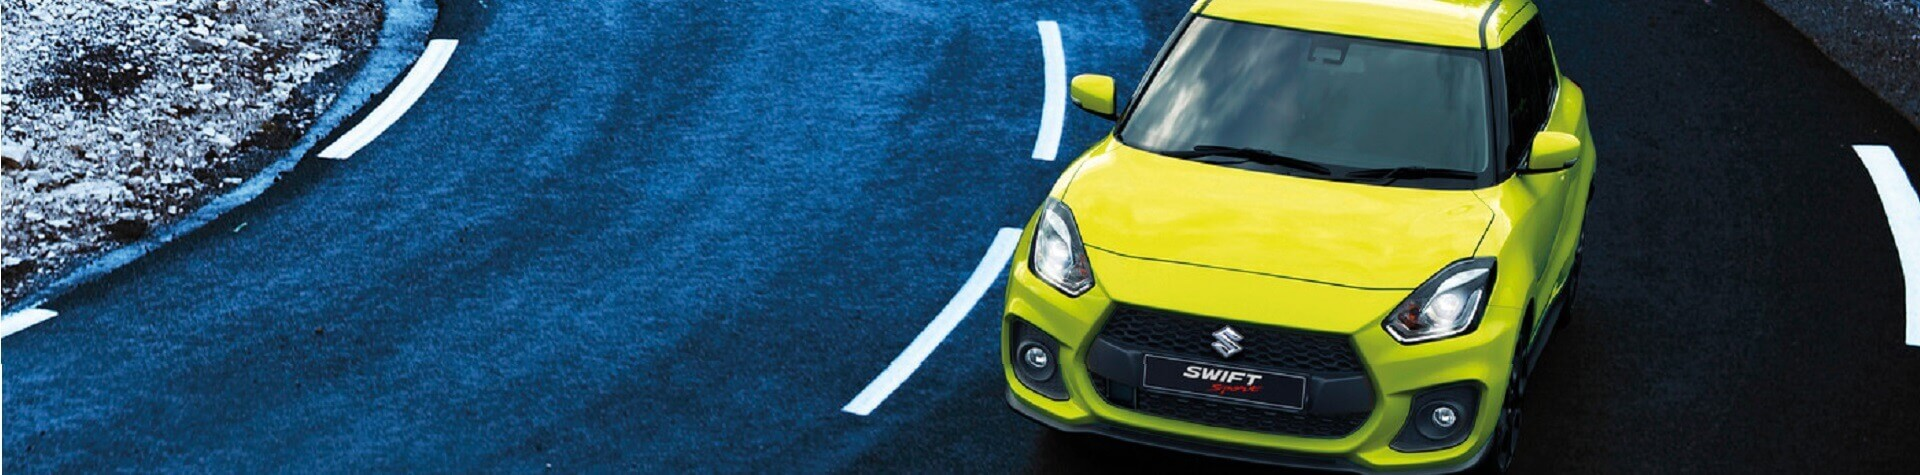 Suzuki Swift cornering